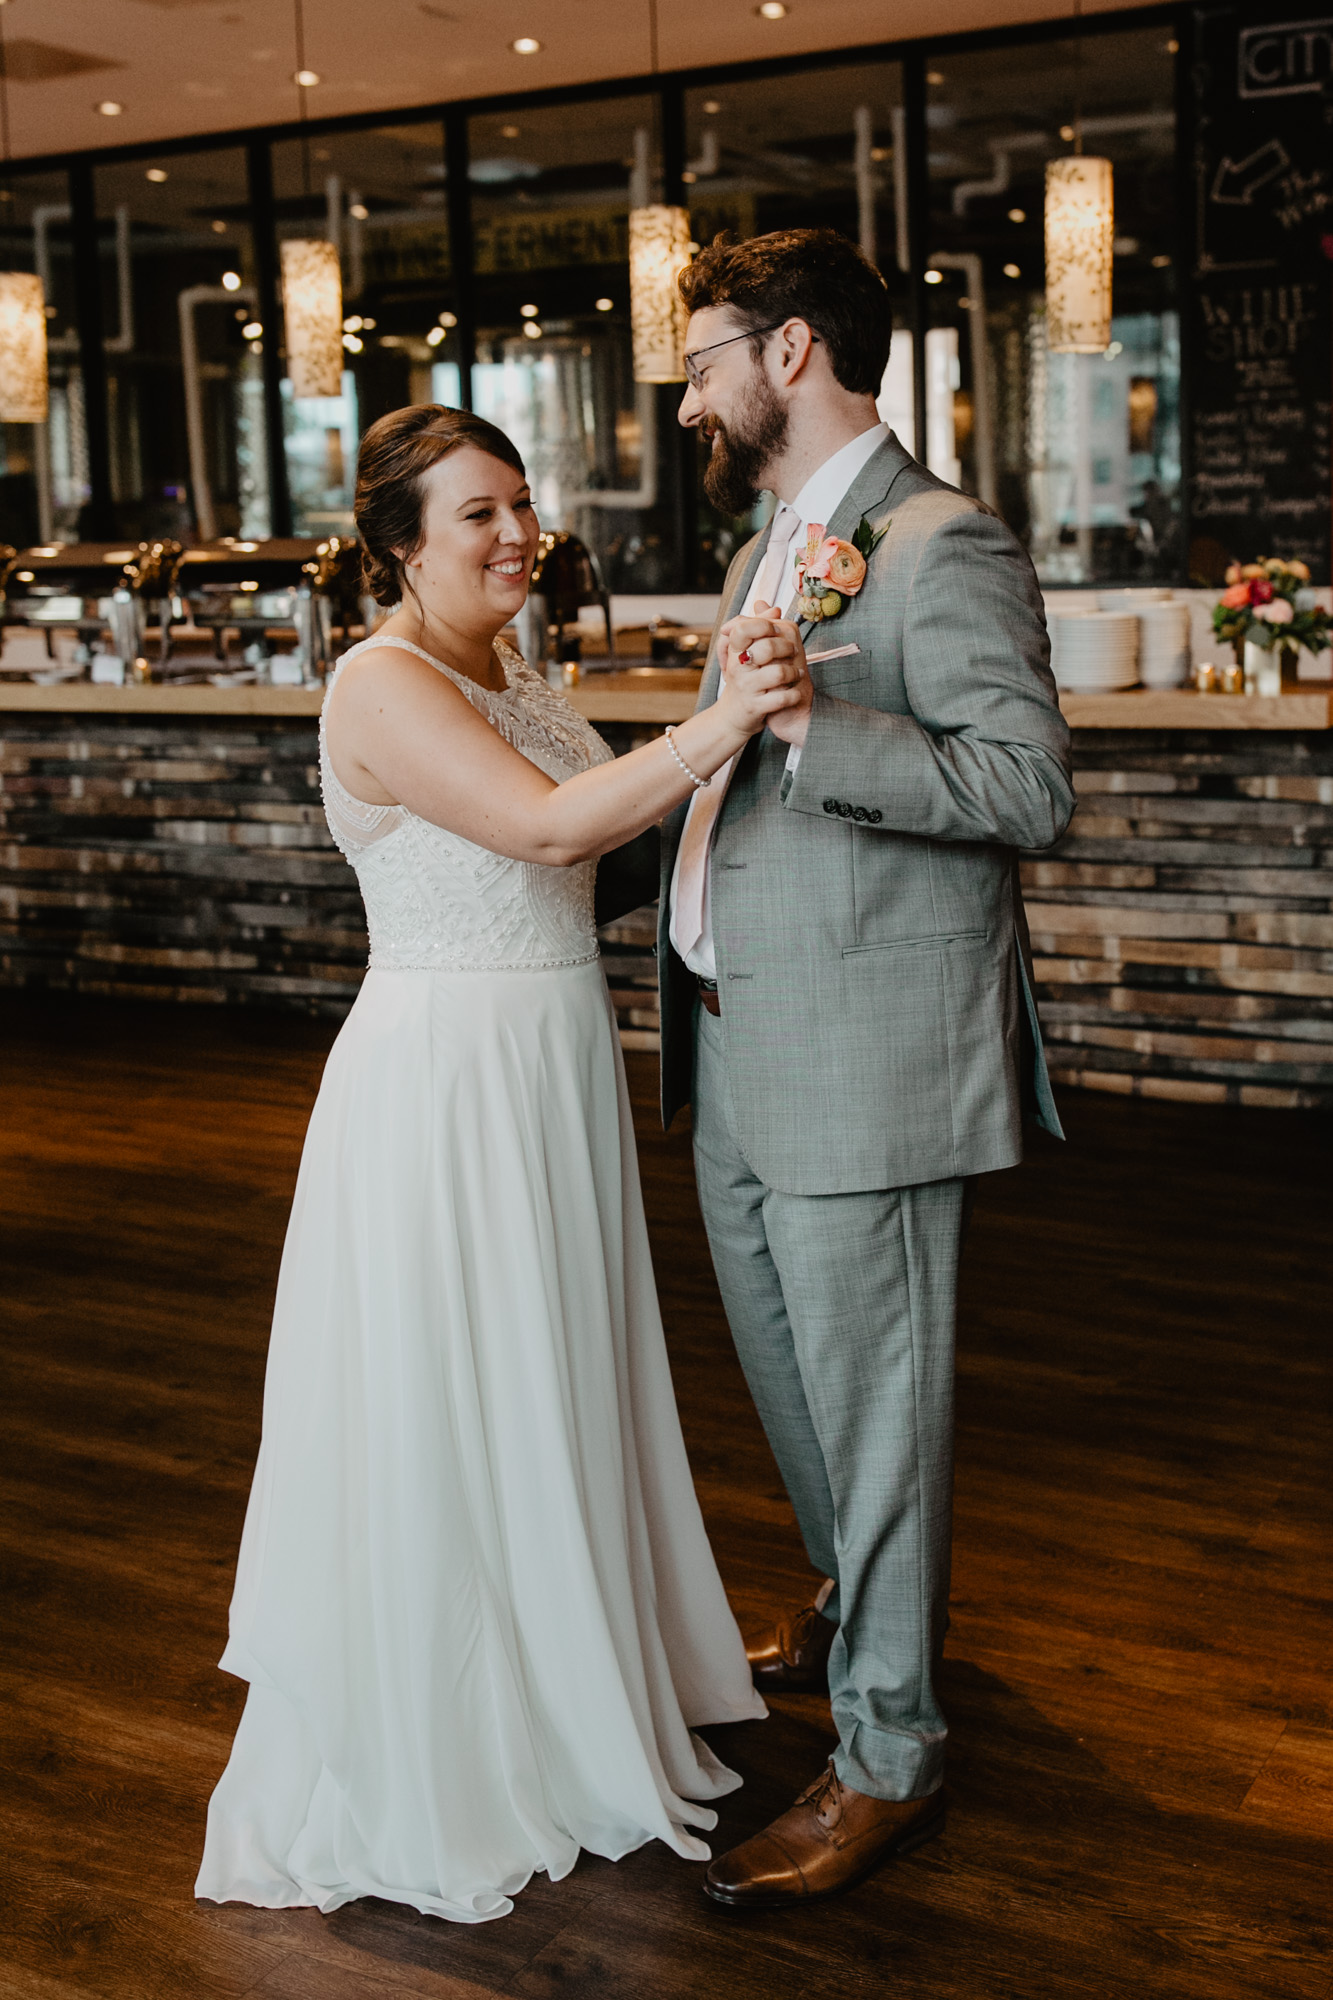 Bride and groom share their first dance at City Winery Boston